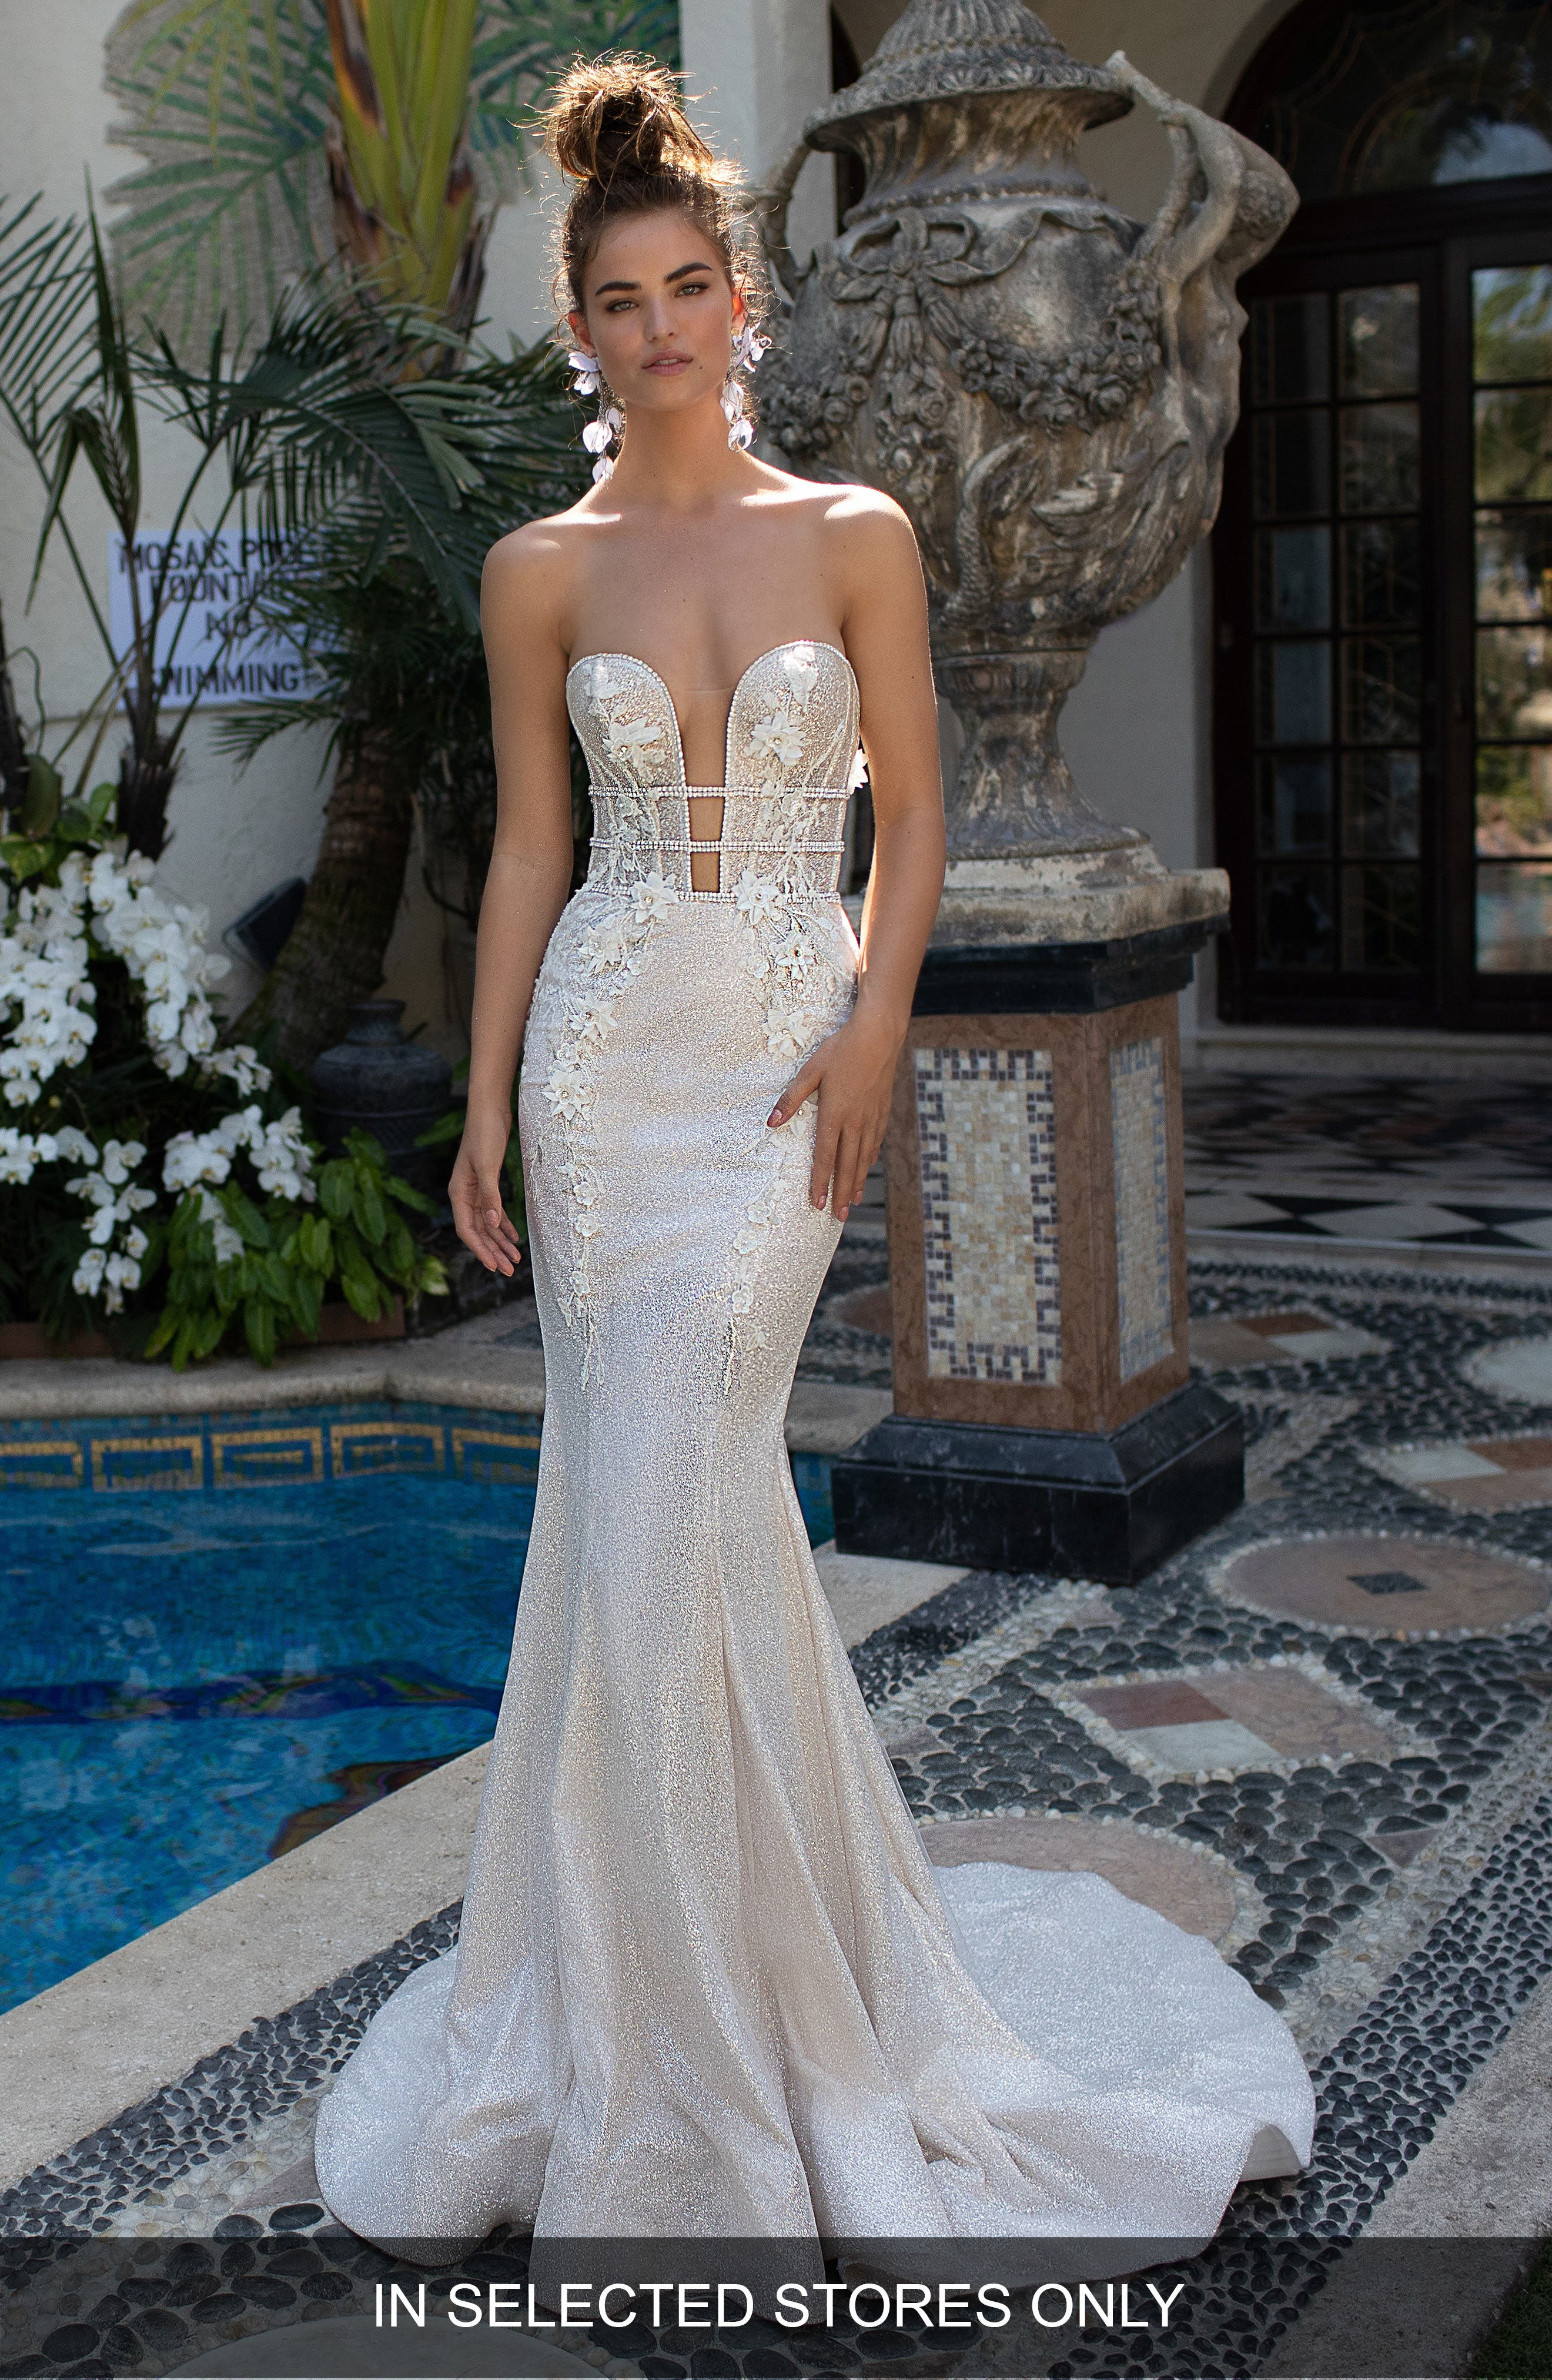 Embellished Strapless Mermaid Gown,                             Main thumbnail 1, color,                             IVORY